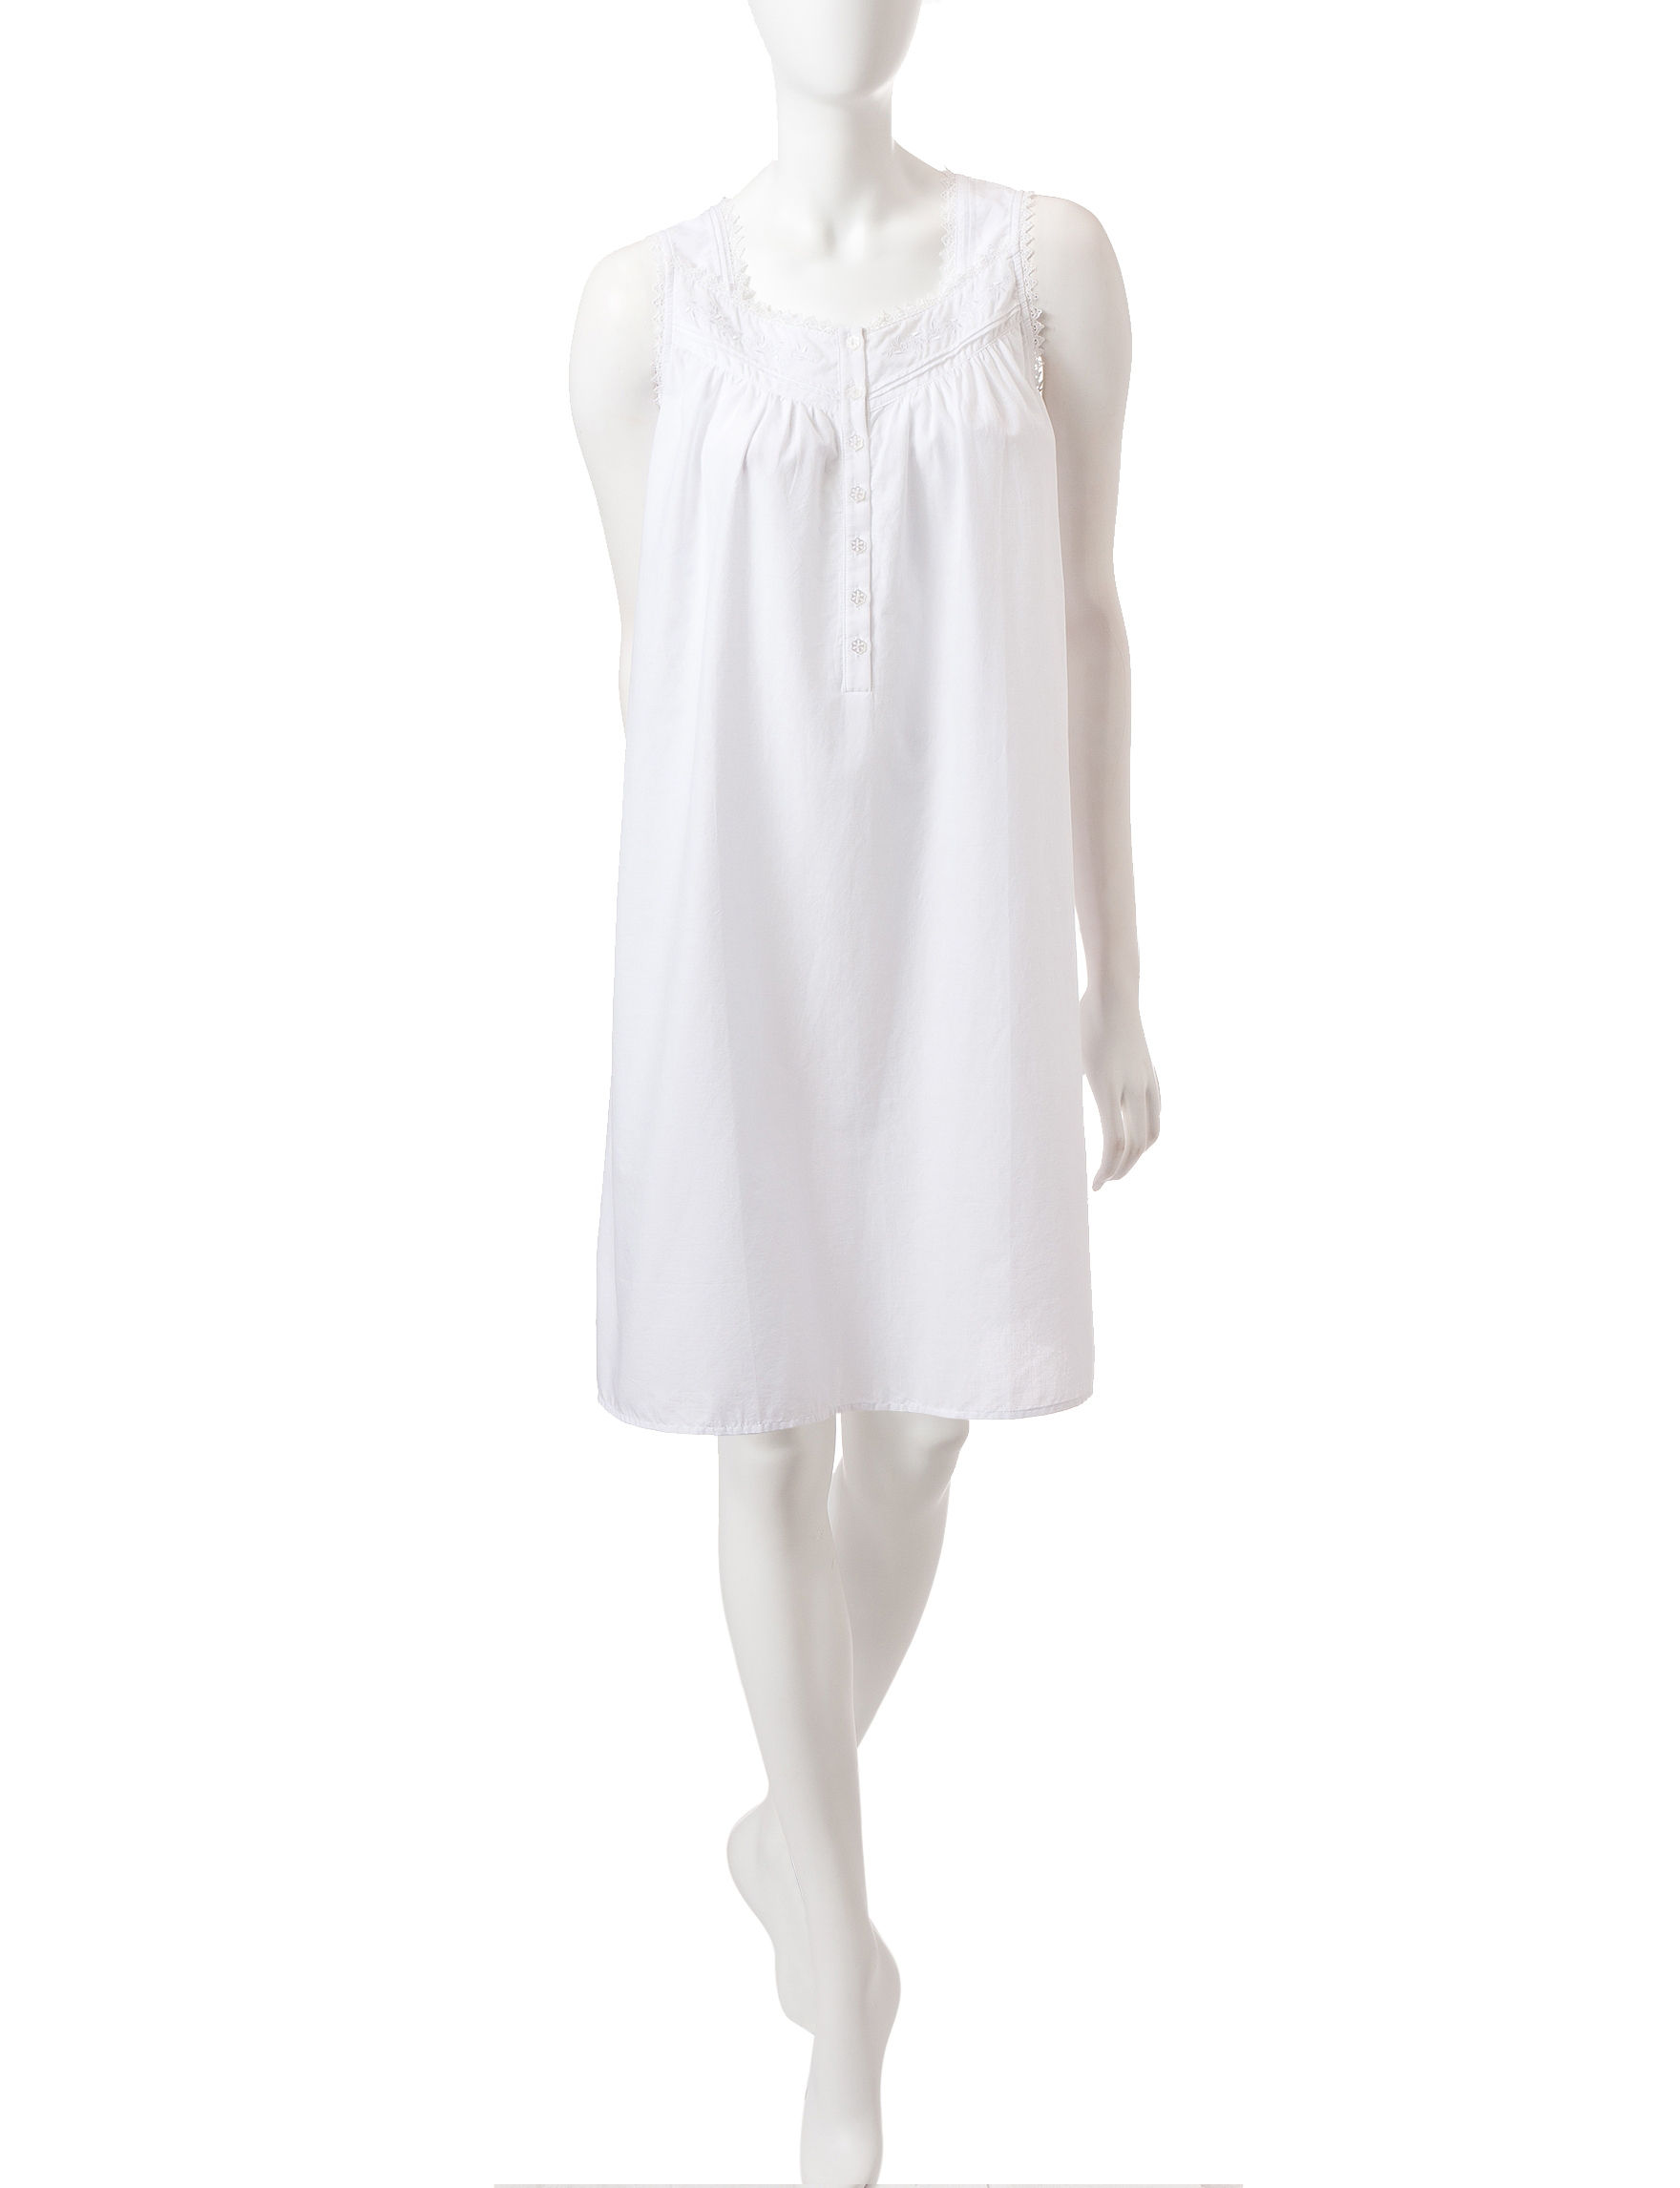 Jasmine Rose White Nightgowns & Sleep Shirts